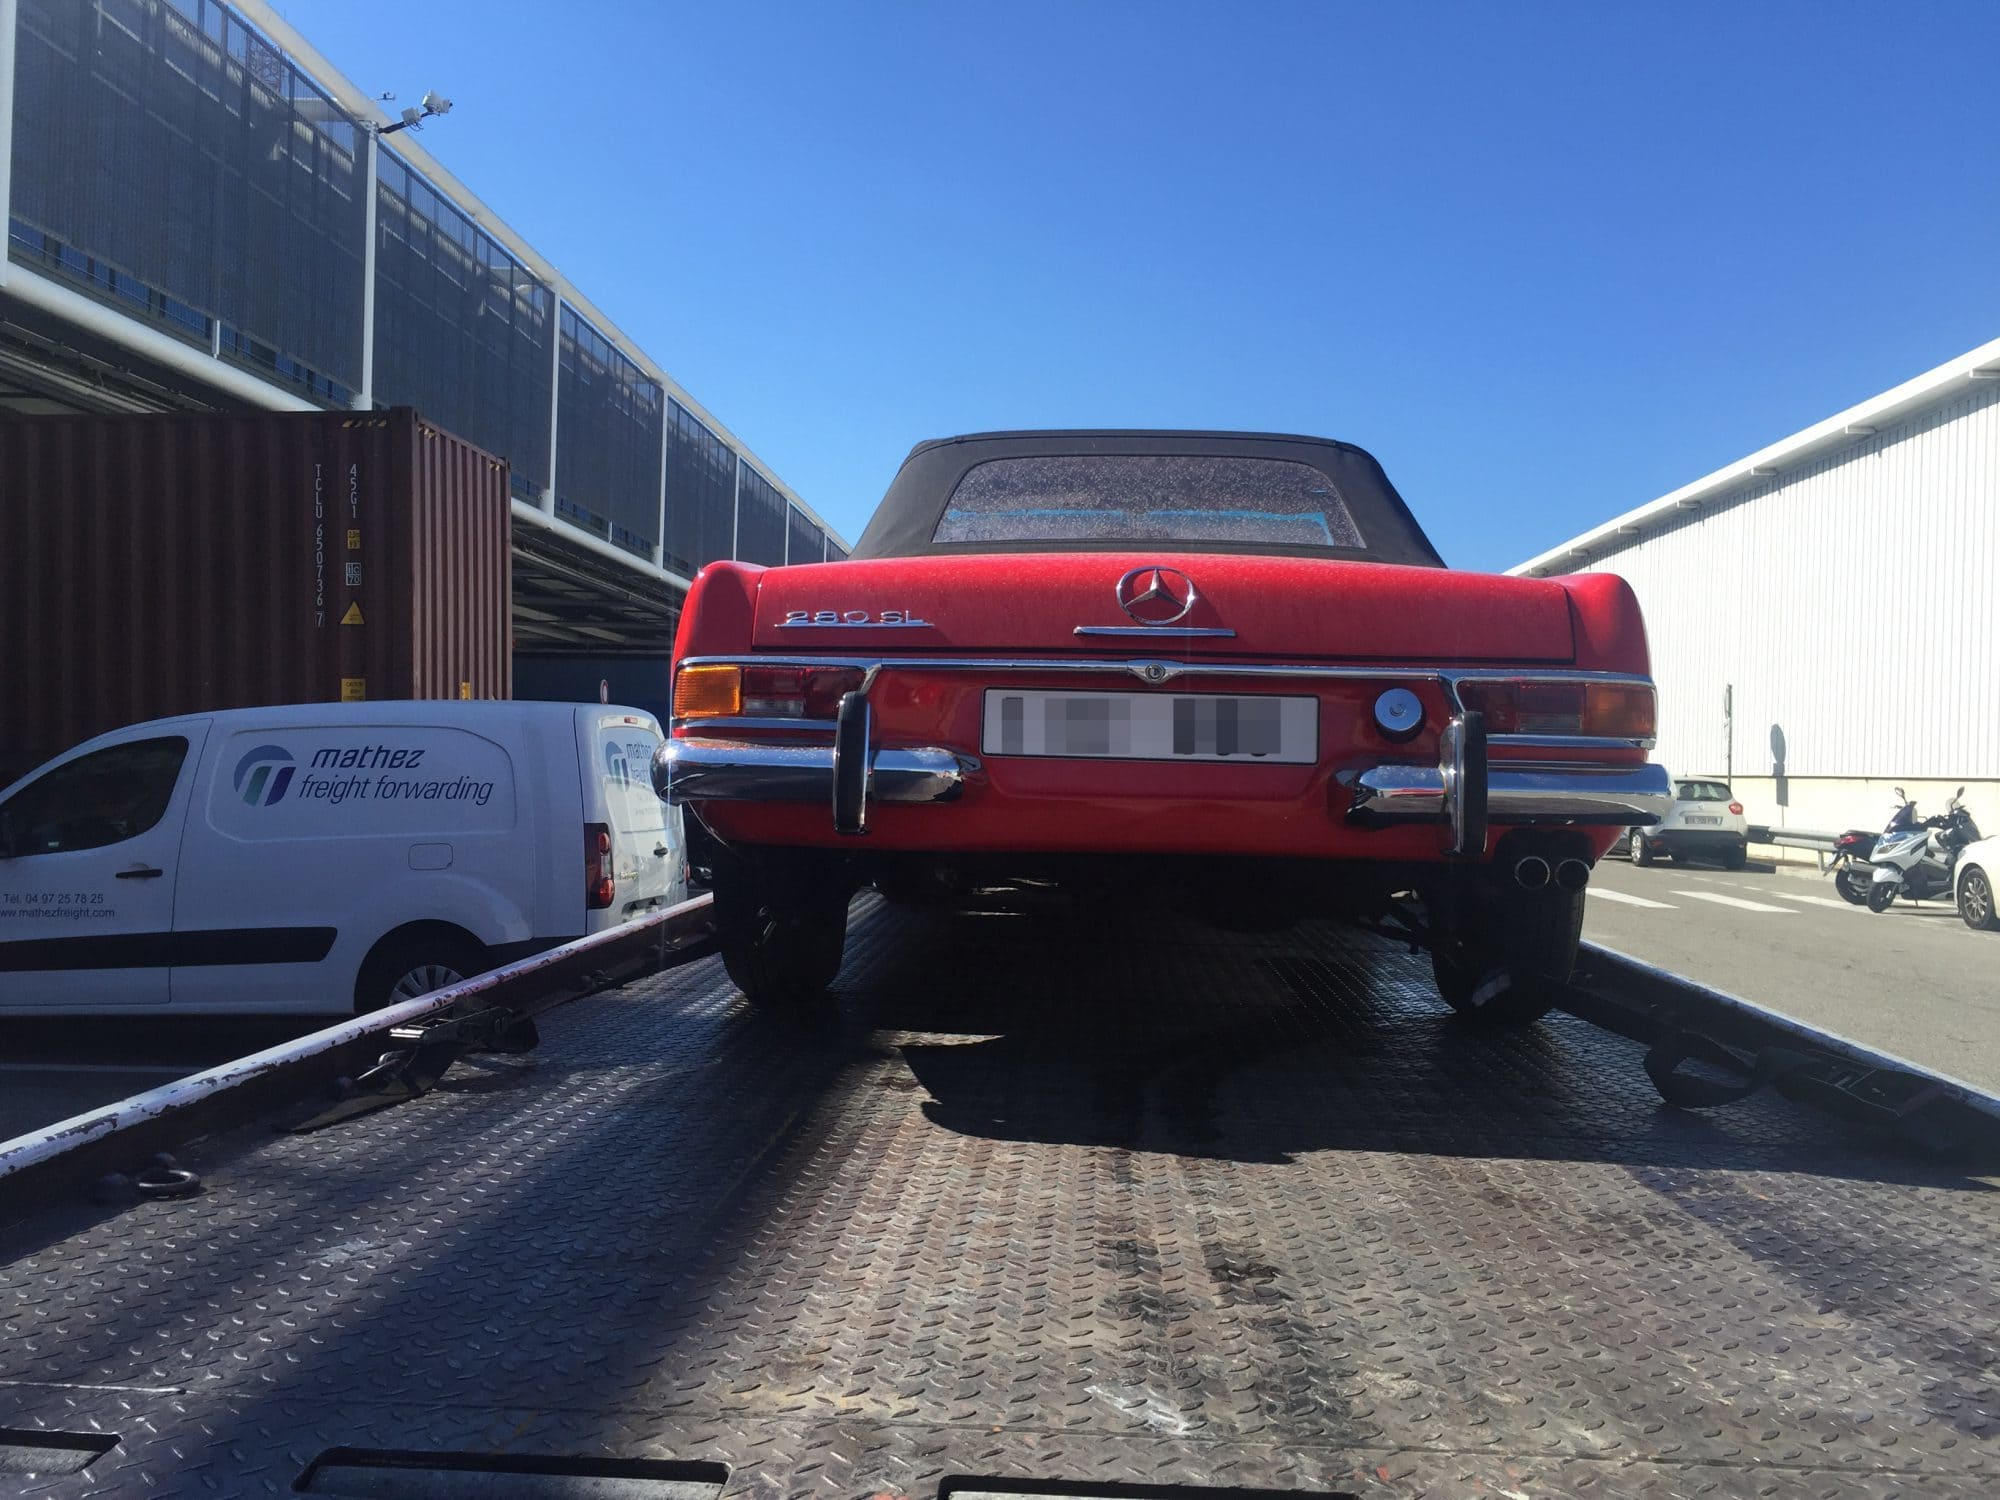 Shipping cars to France - Mathez Freight Forwarding